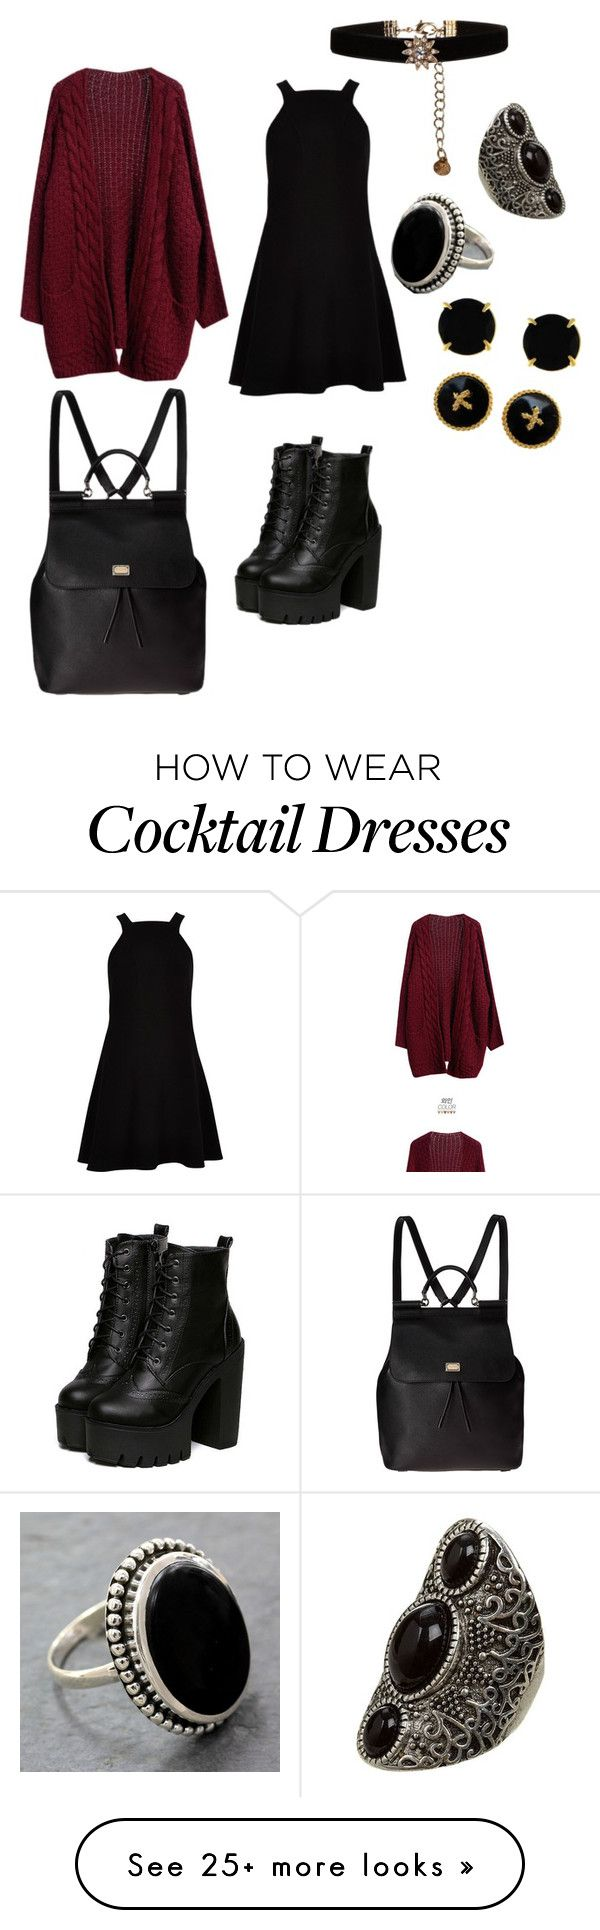 """""""#188"""" by jel1ica on Polyvore featuring River Island, Goroke, Accessorize, NOVICA, Vince Camuto, Chanel and Dolce&Gabbana"""